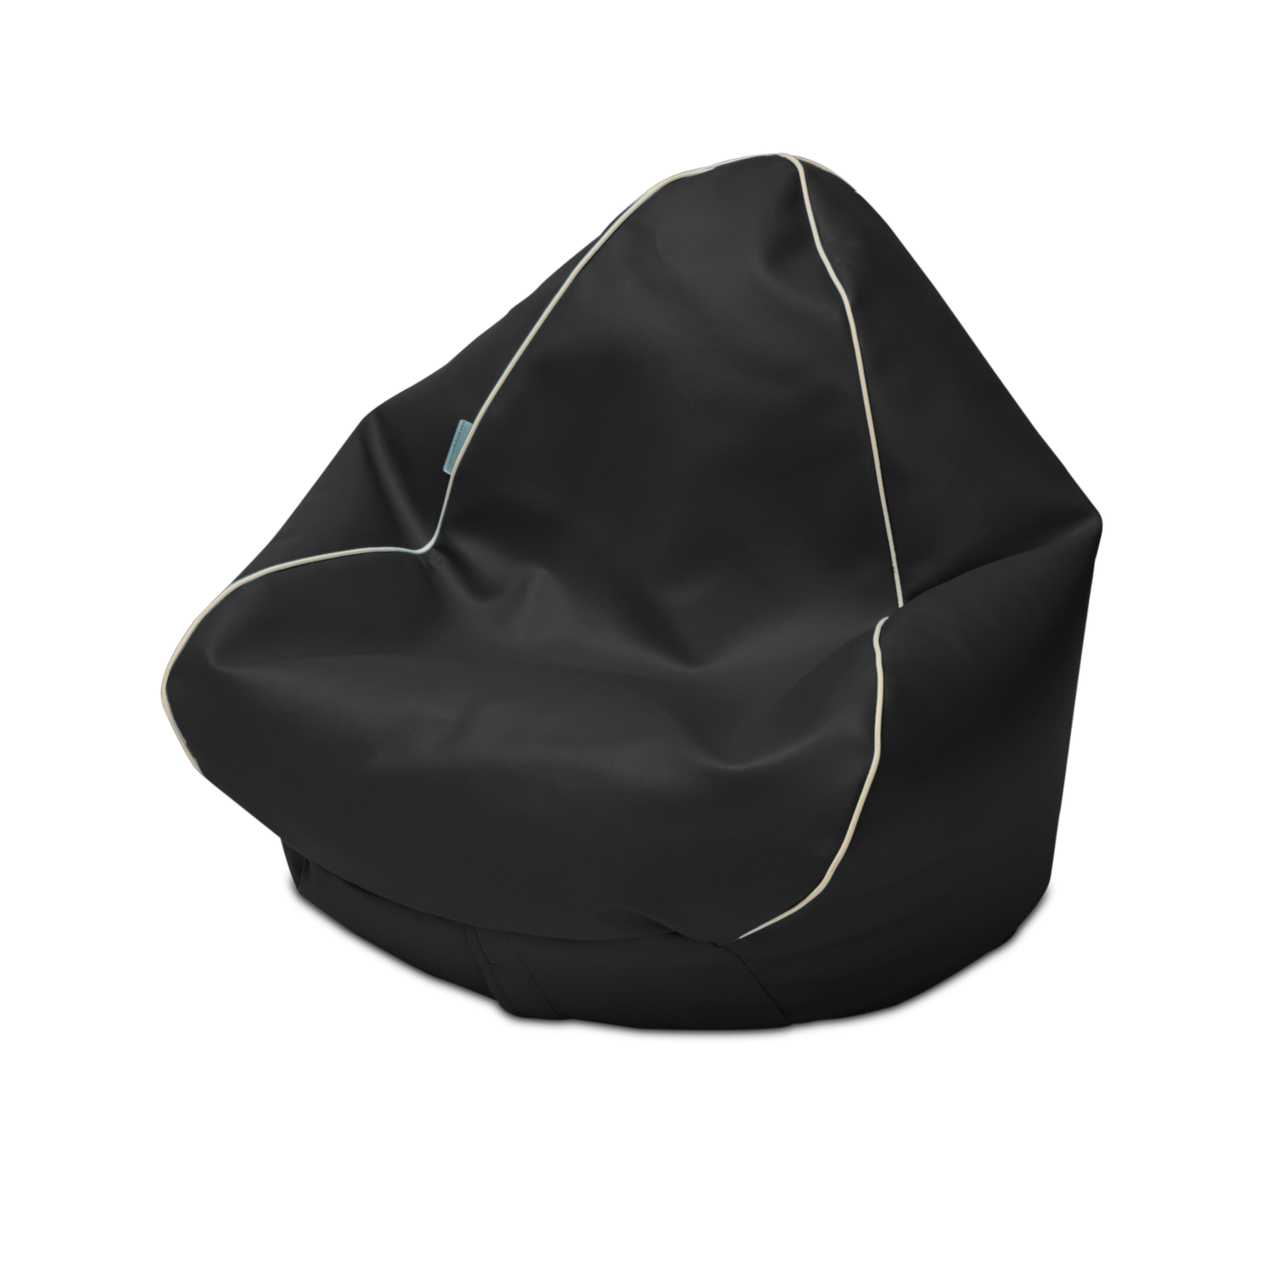 Retro Kids Bean Bag in black